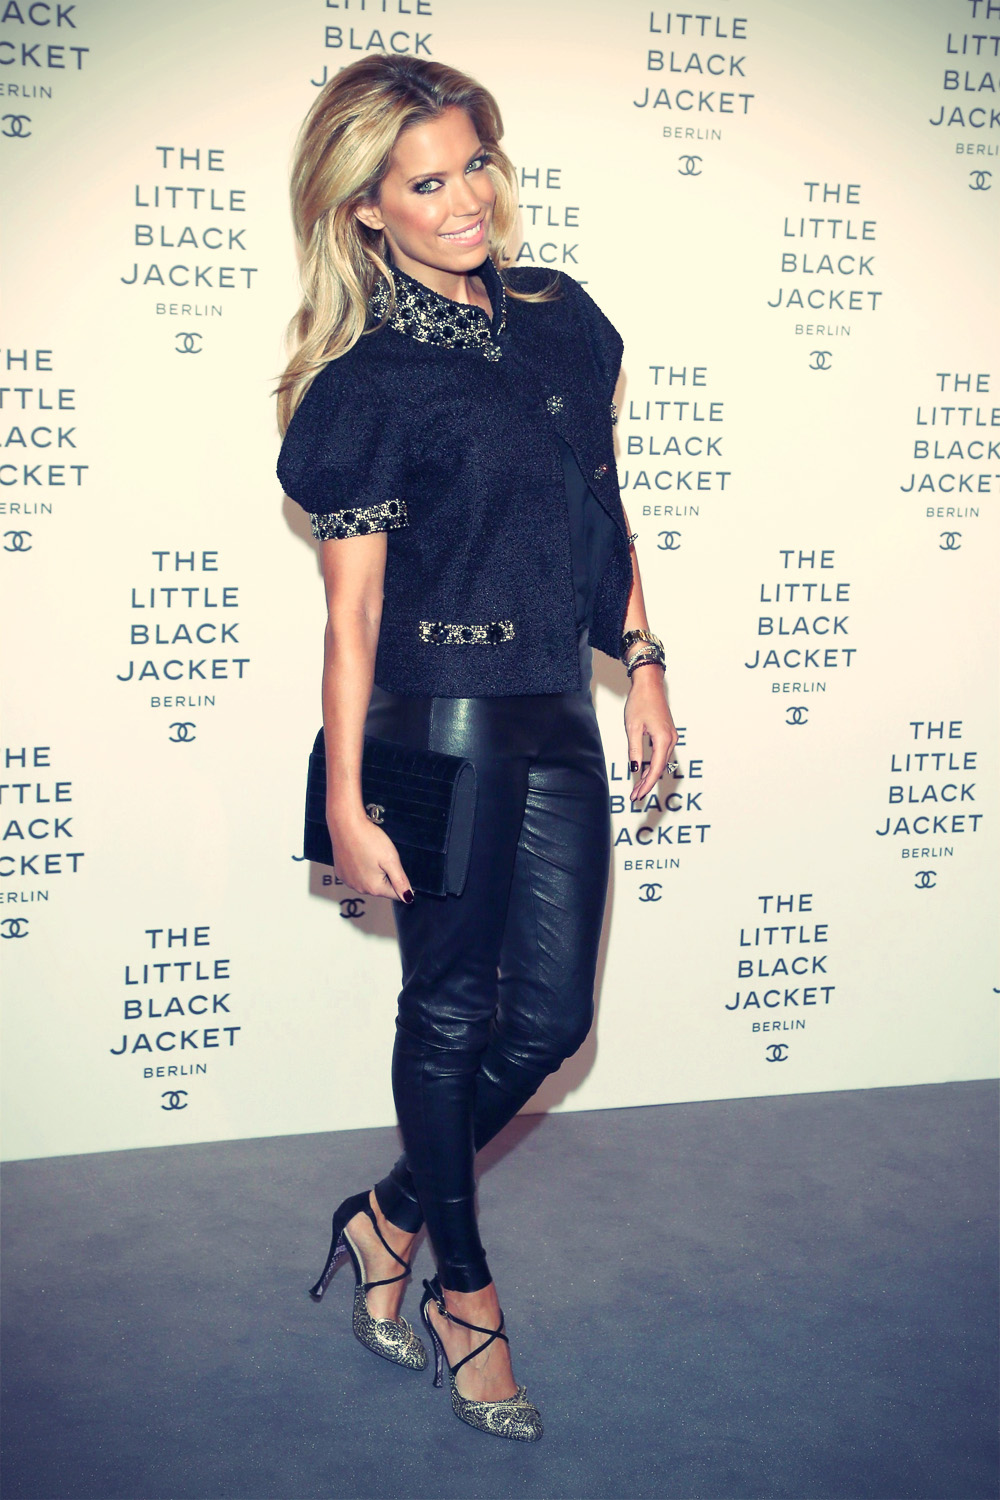 Sylvie van der Vaart attends CHANEL The Little Black Jacket Exhibition